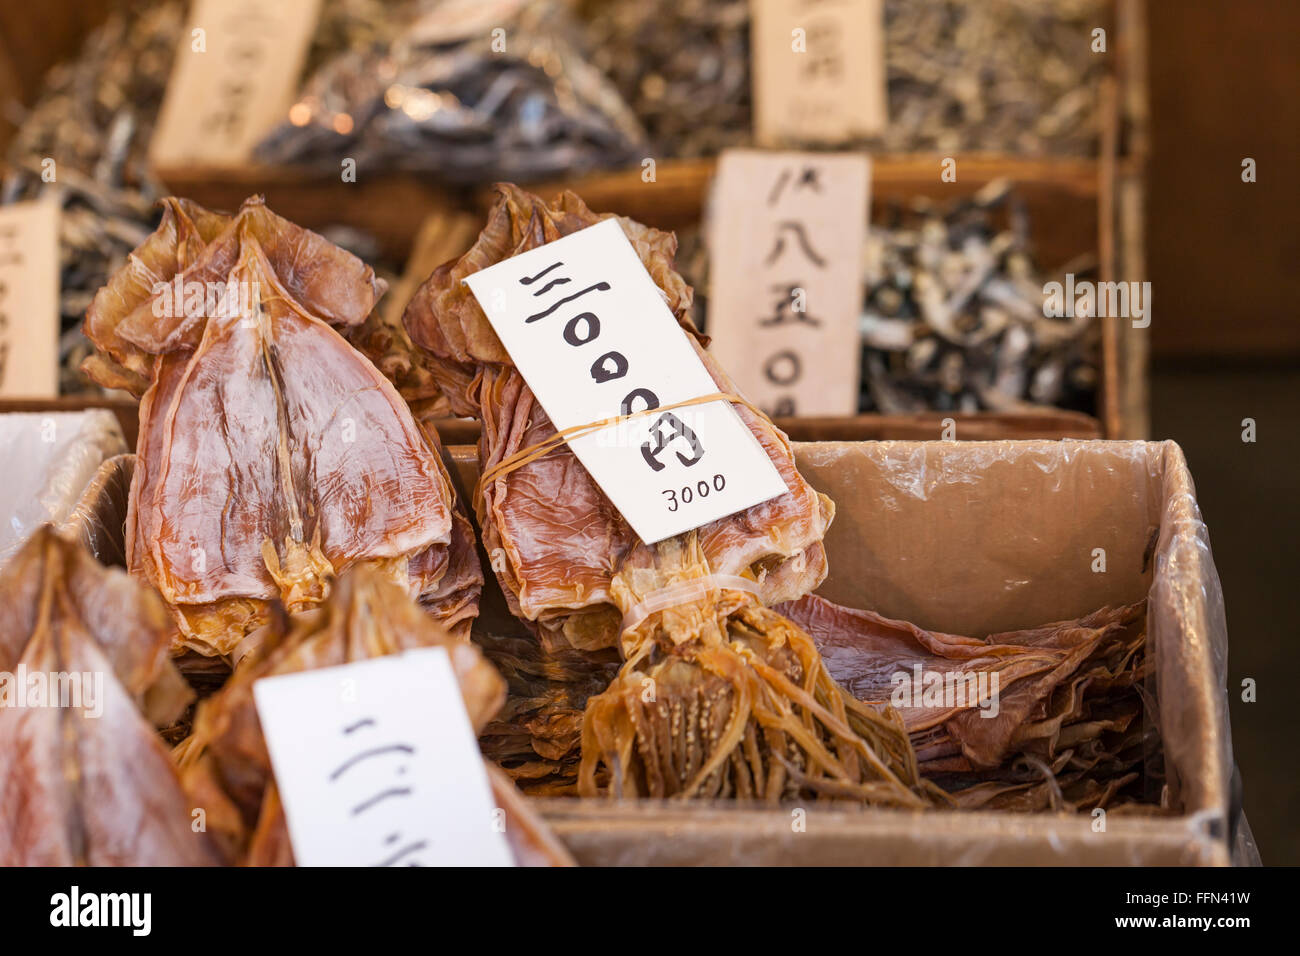 Dried fish, seafood product at market from Japan. - Stock Image